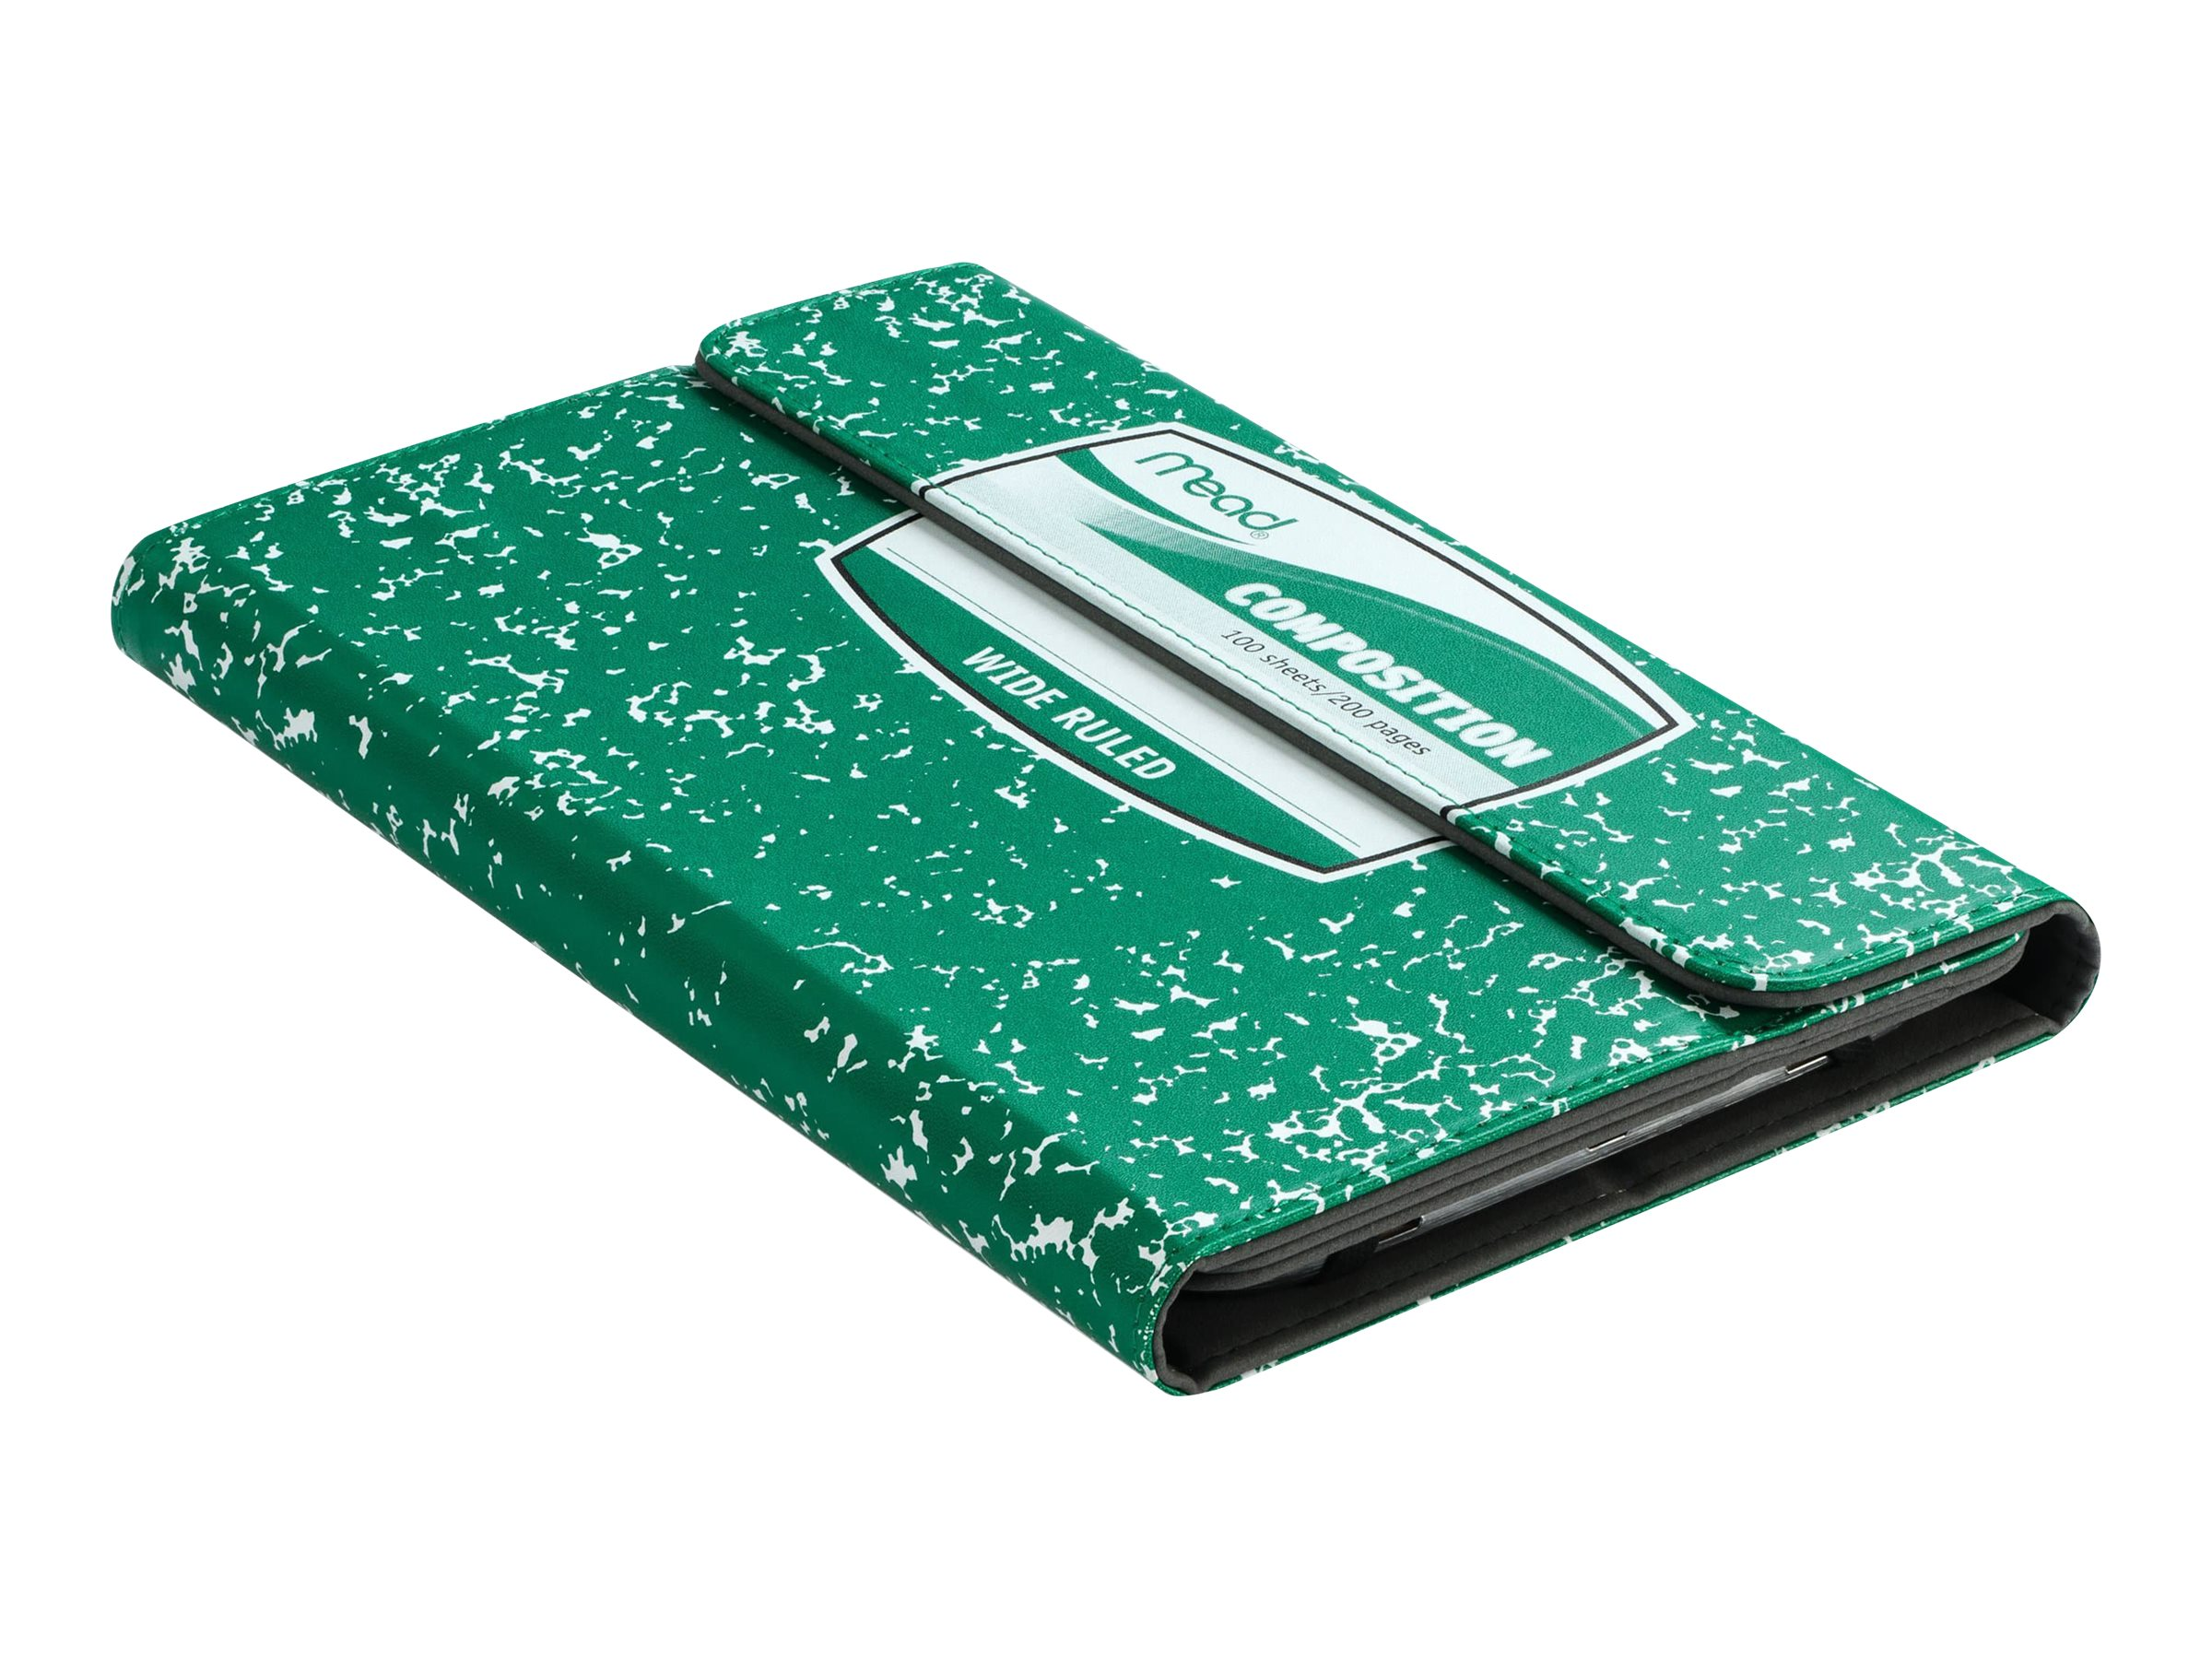 Kensington Composition Book Universal Case for 7 8 Tablets, Green